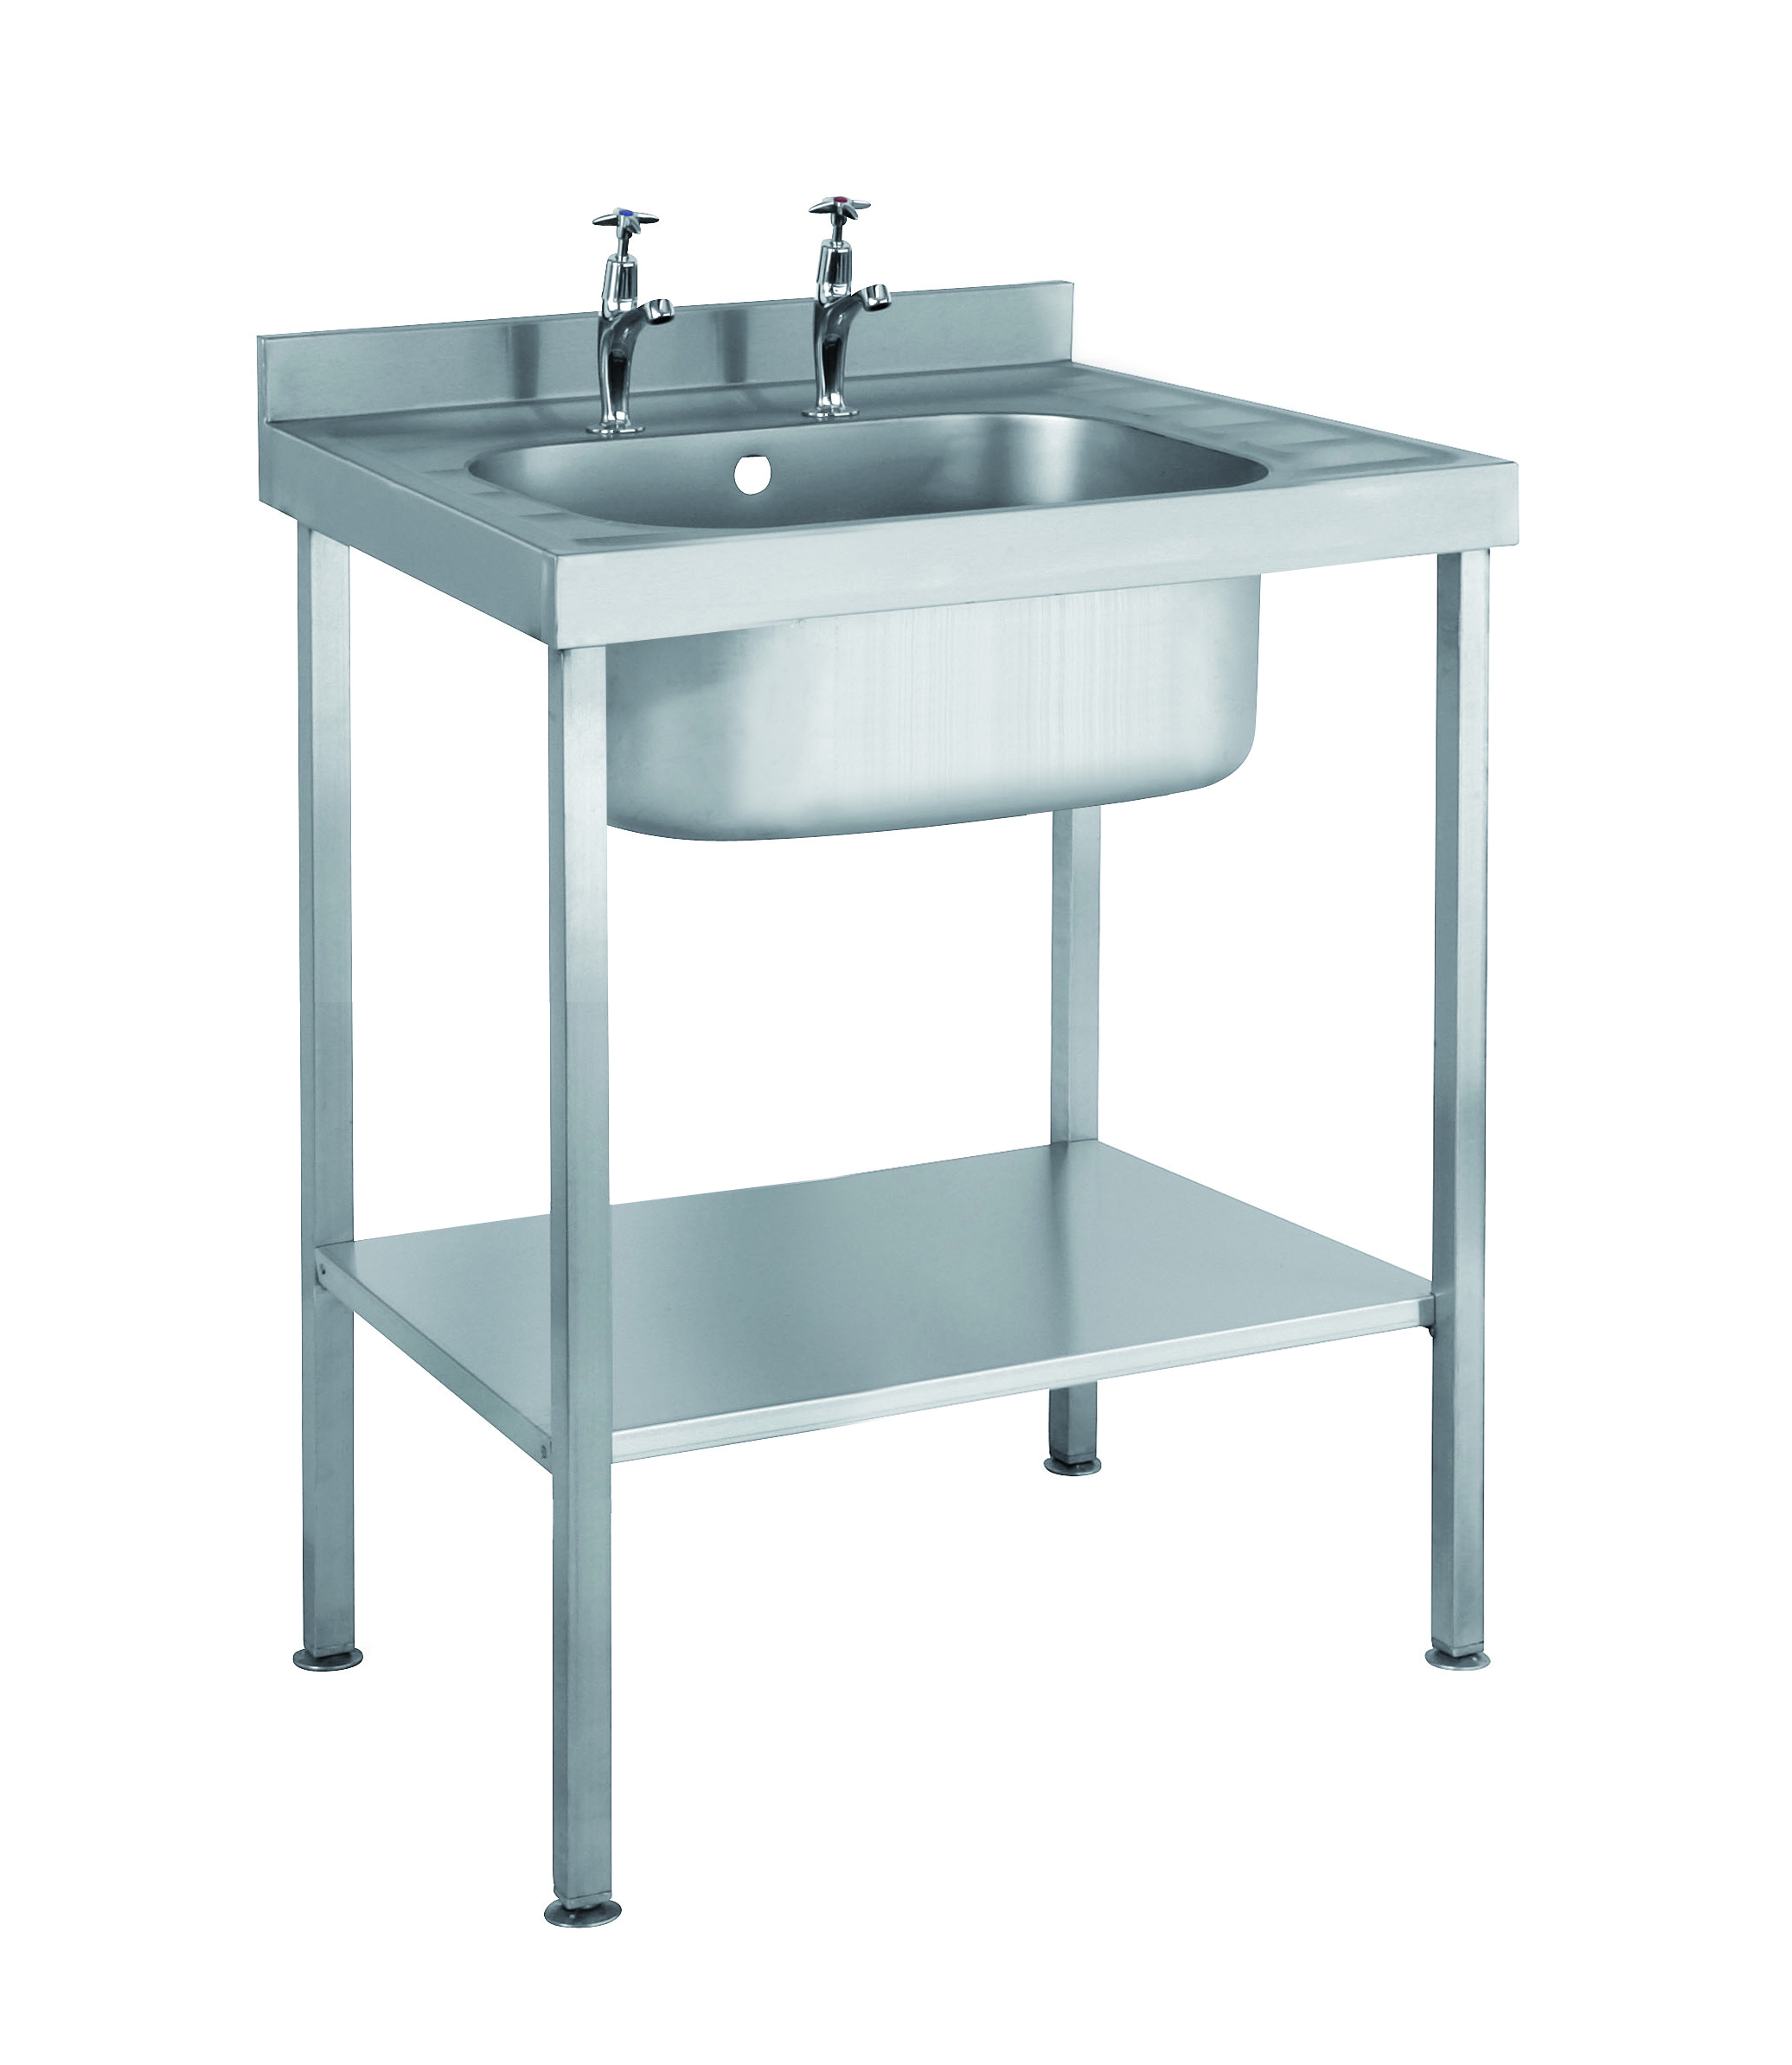 Sinks - No Drainers